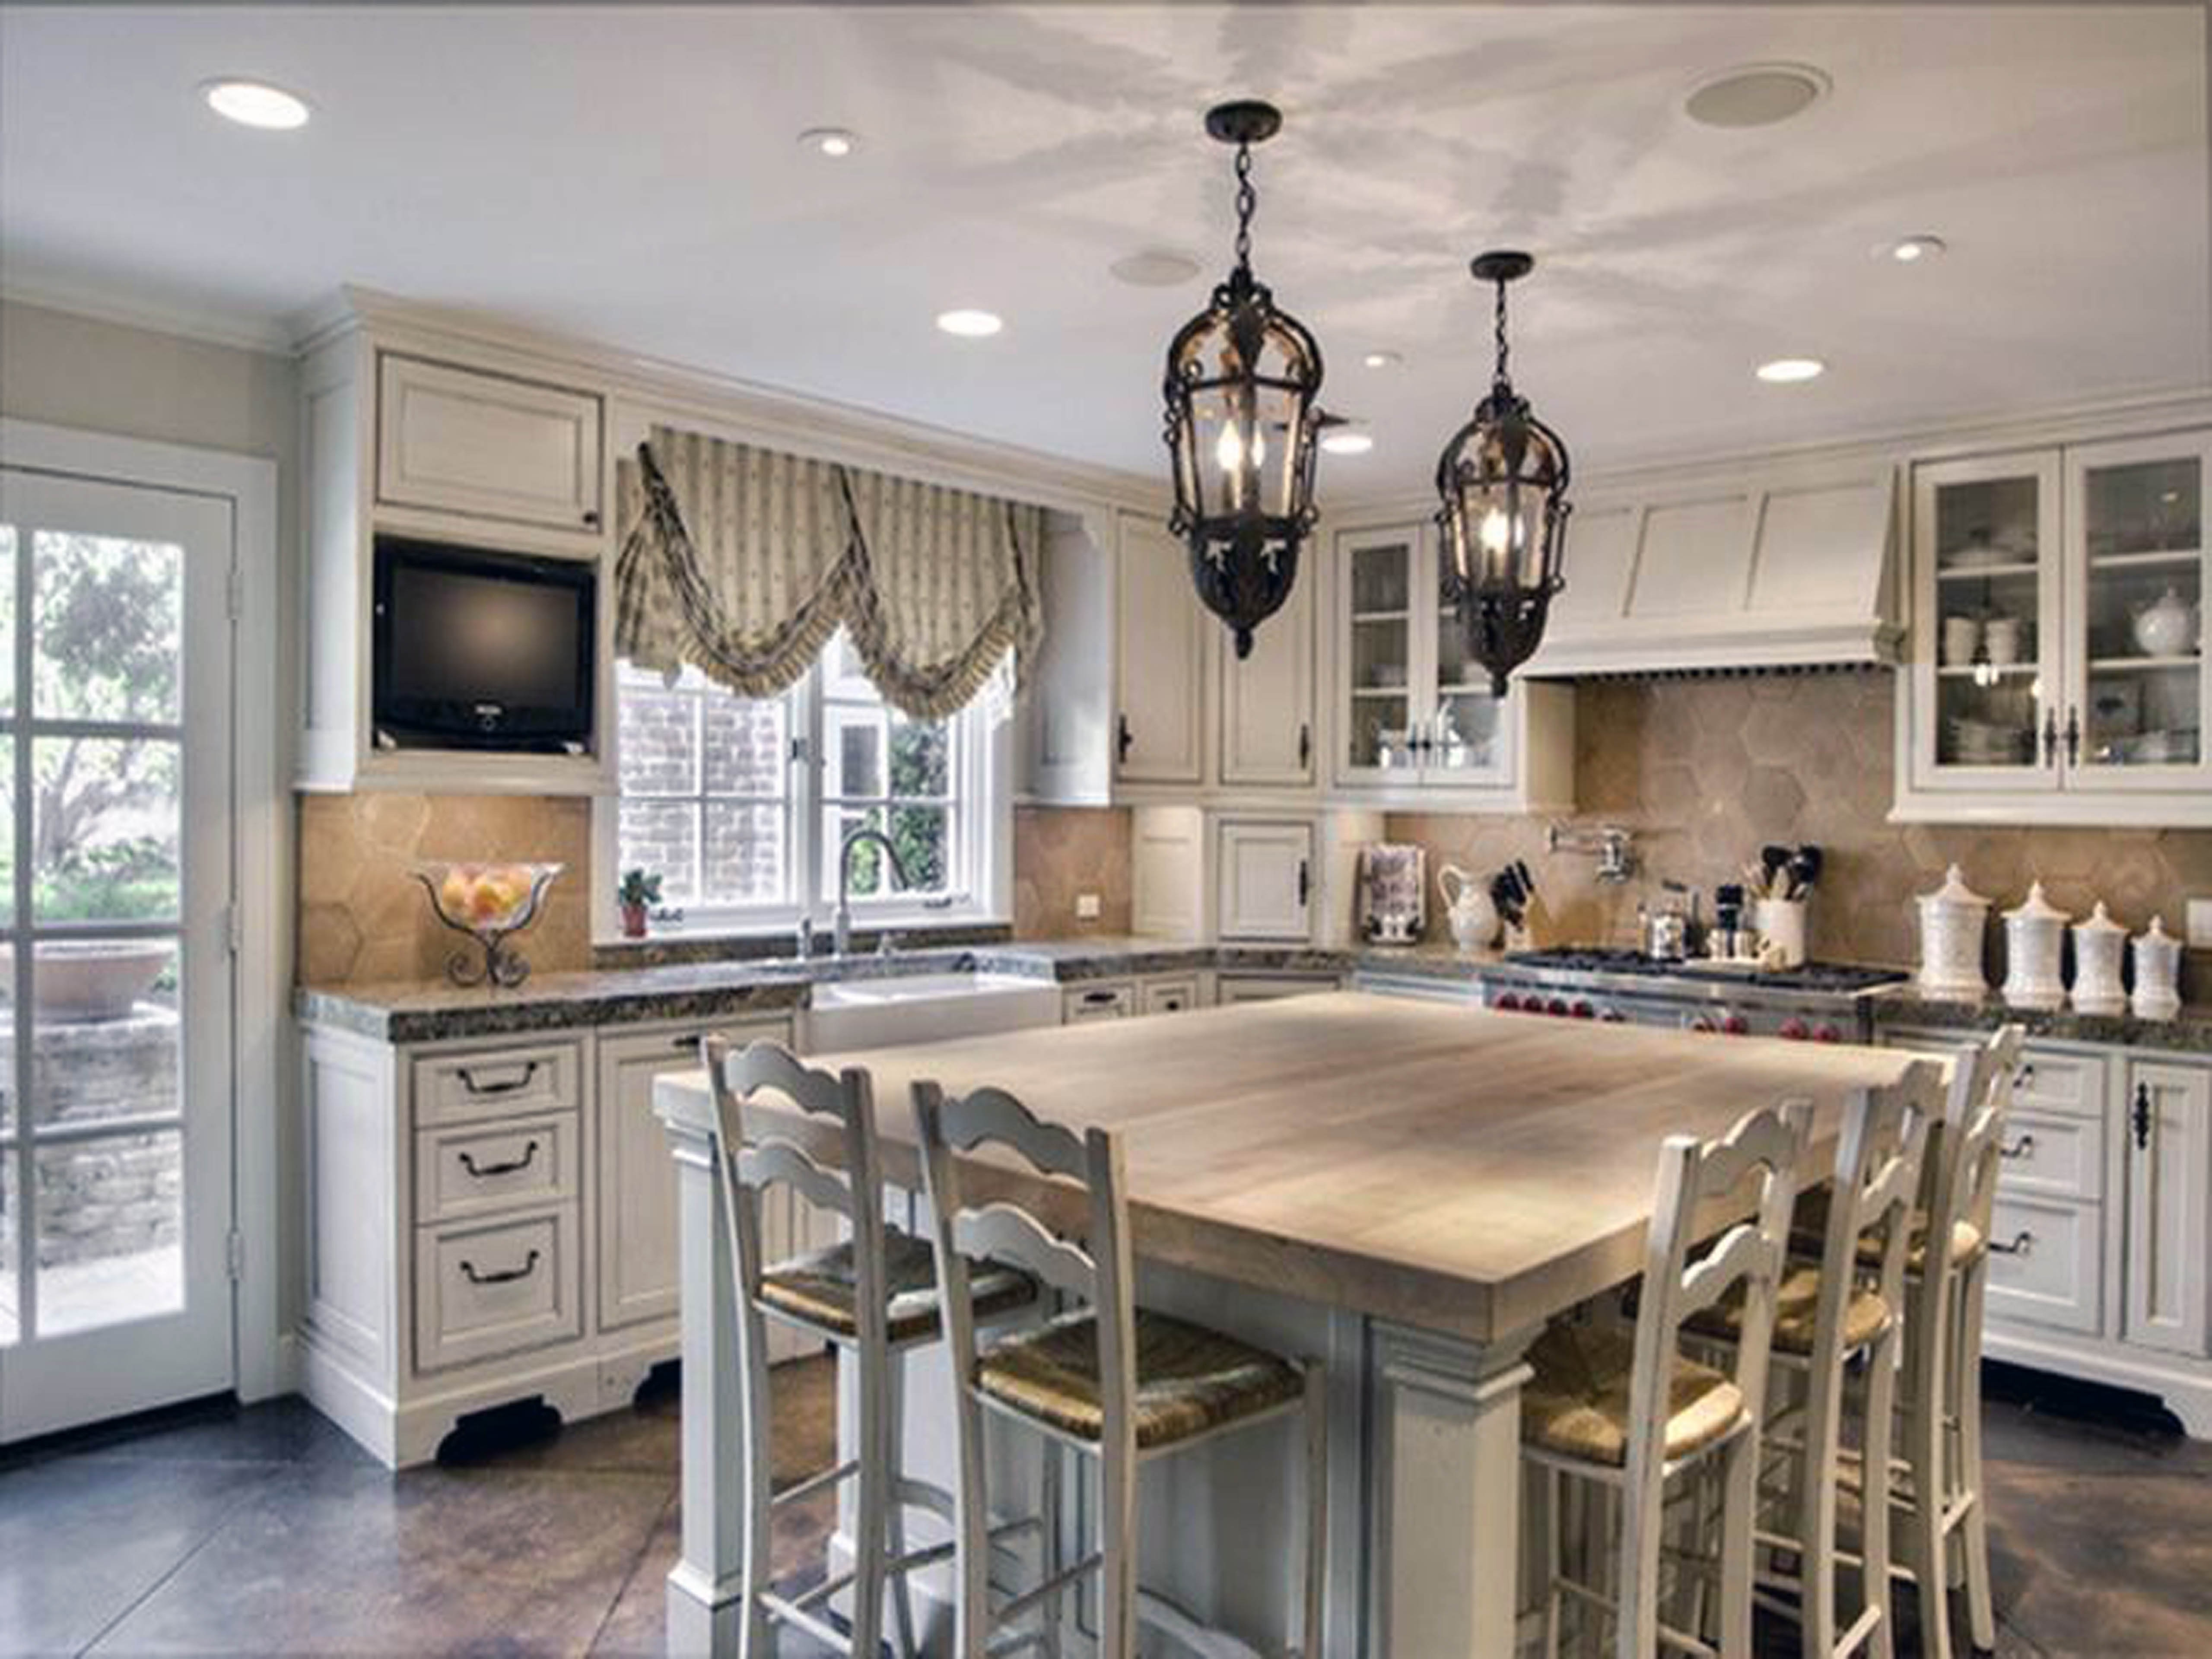 Widely Used French Country Chandeliers For Kitchen Within Black Iron French Country Chandelier Lamp Shades Above Solid Wooden (View 5 of 15)